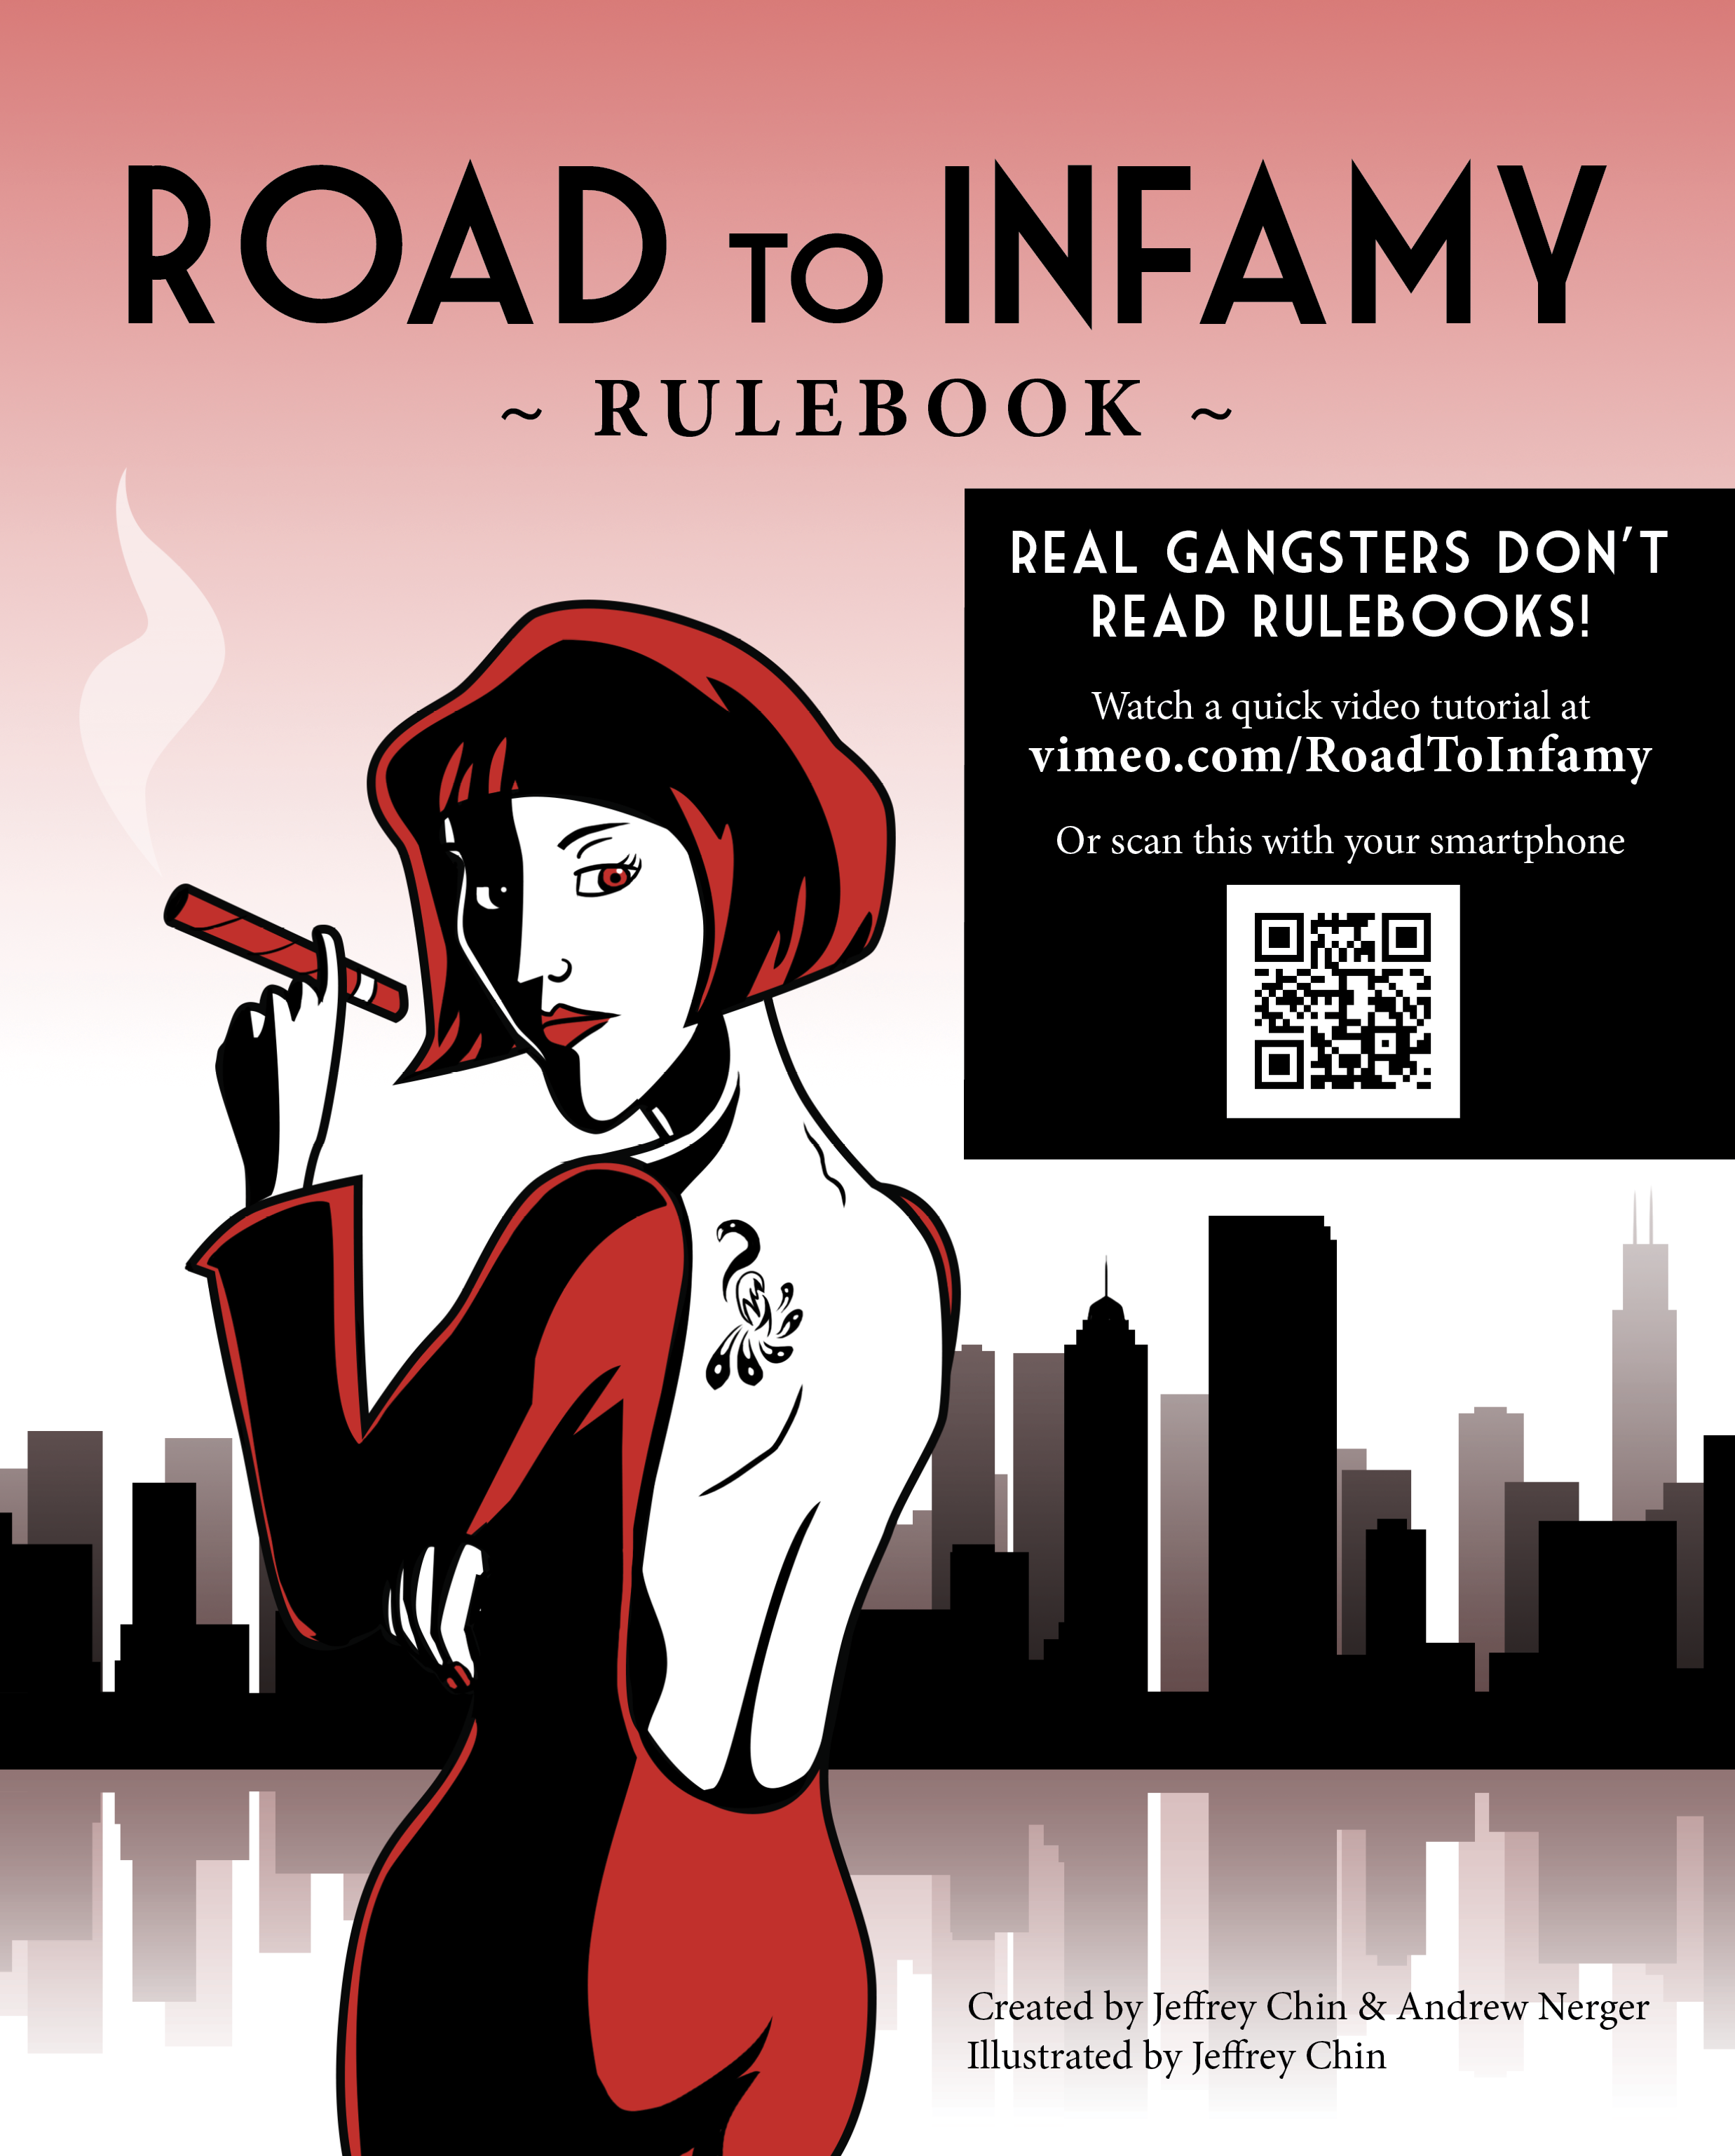 Road To Infamy (With images) Videos tutorial, Real